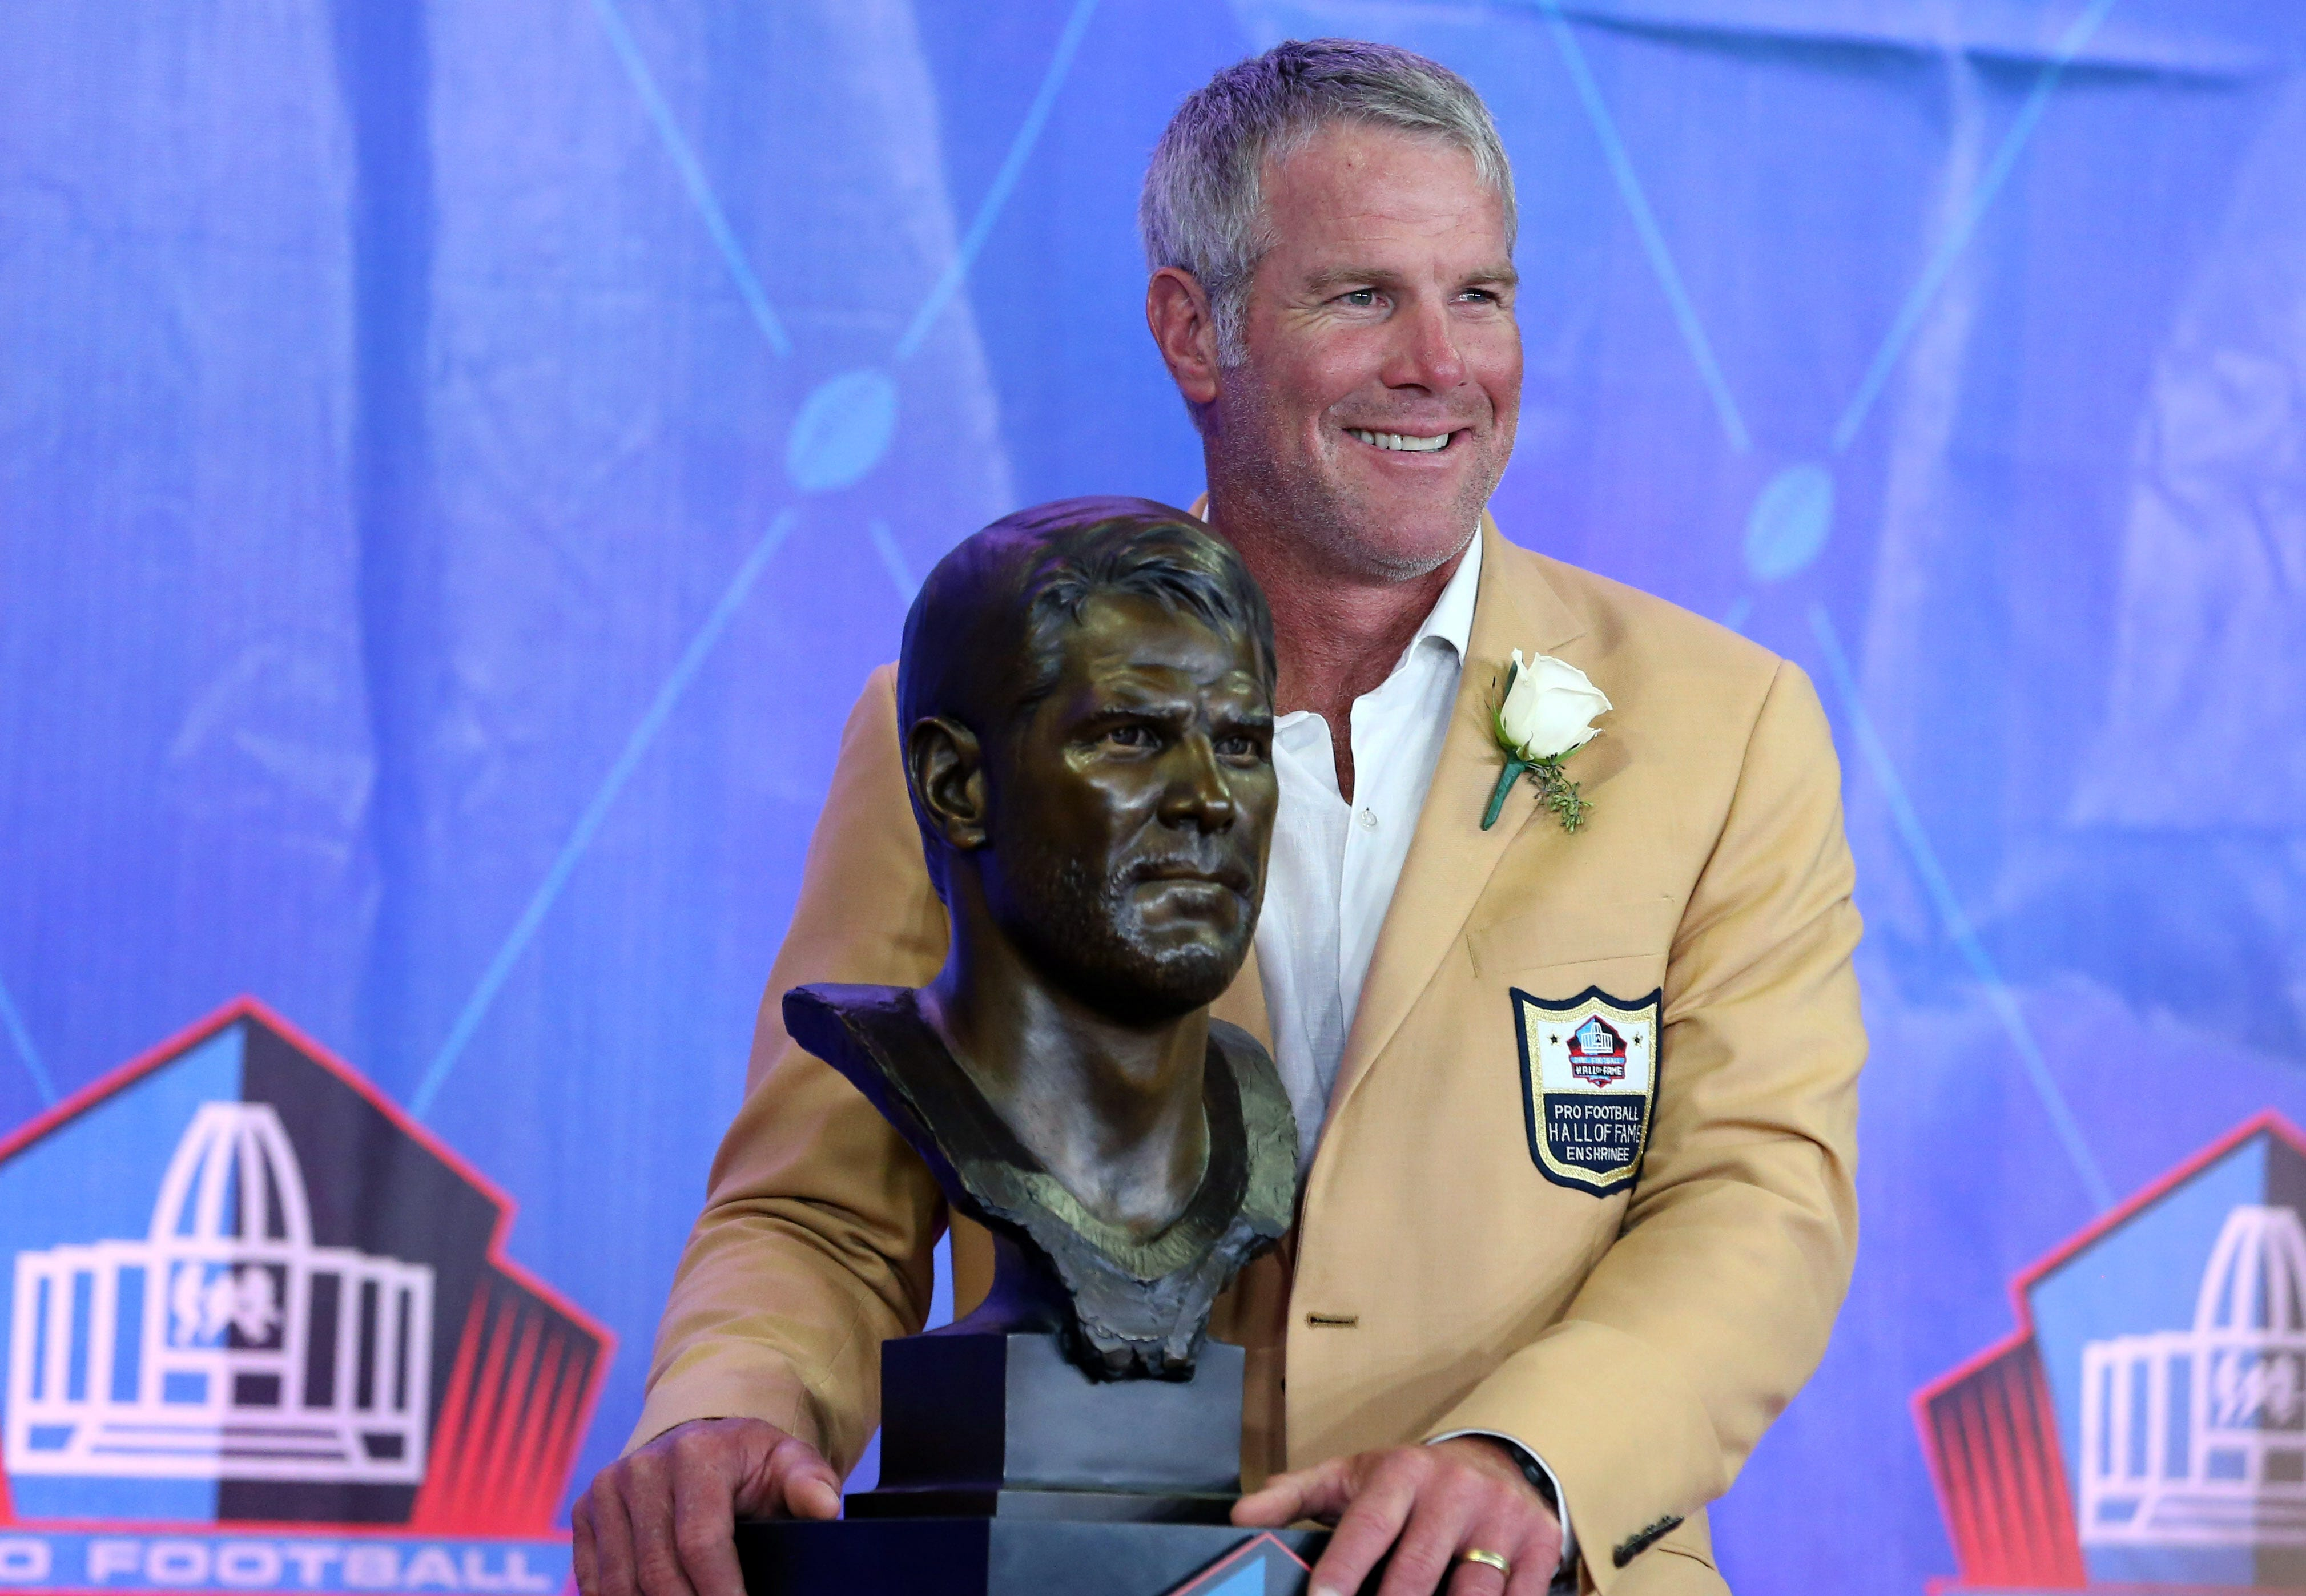 Brett Favre says there's 'no right answer' to kneeling during the national anthem